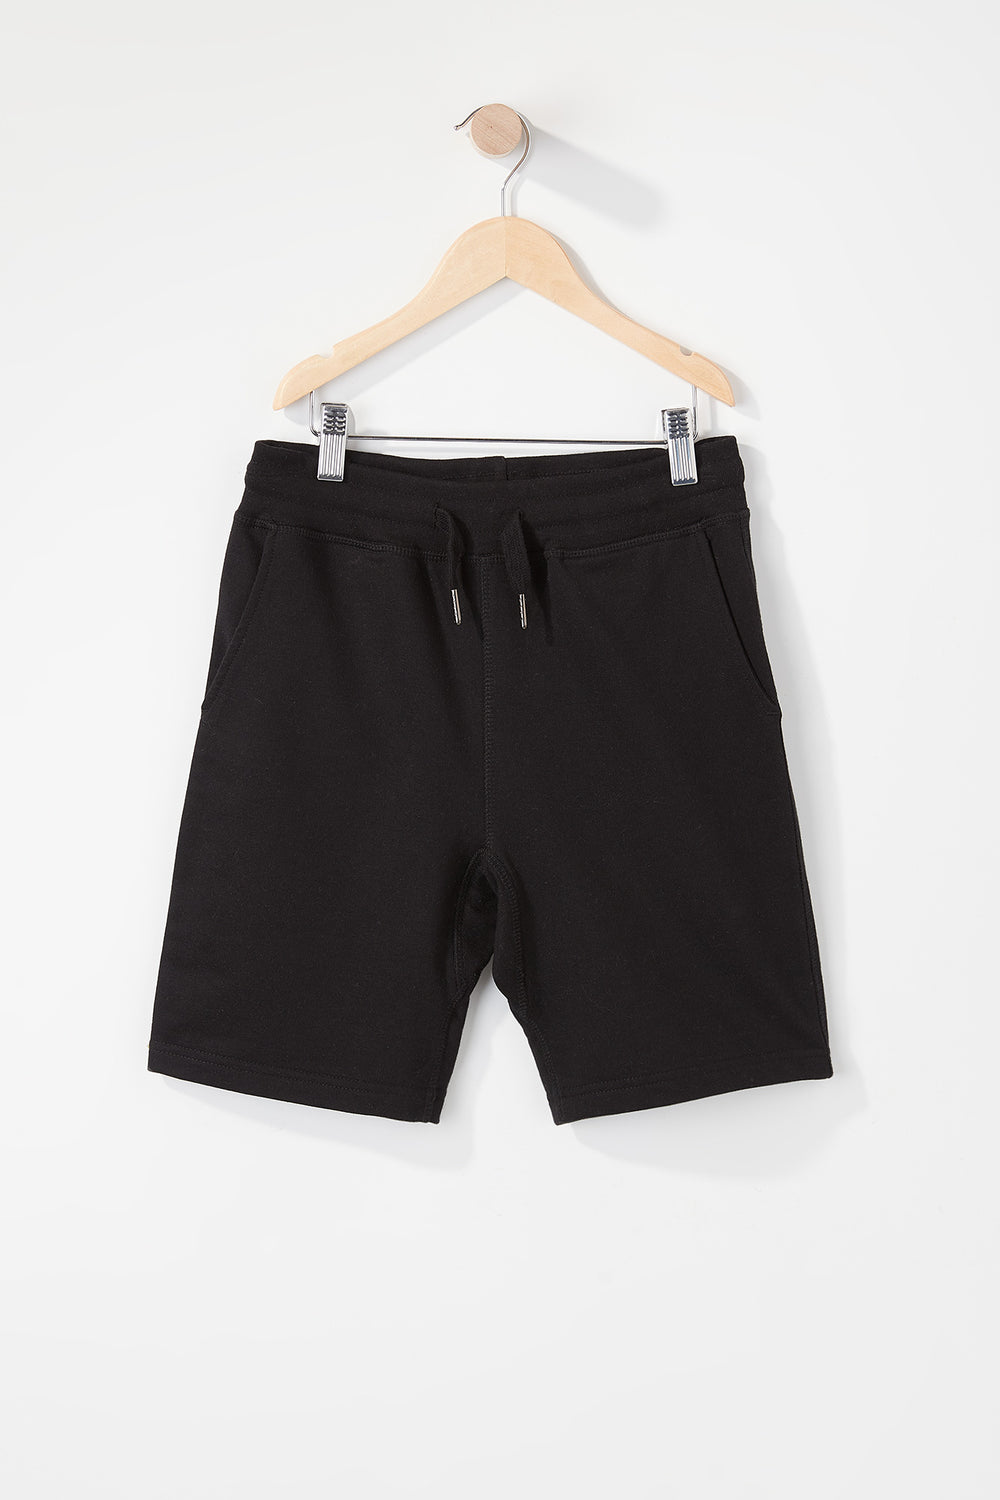 West49 Boys Basic Short Black